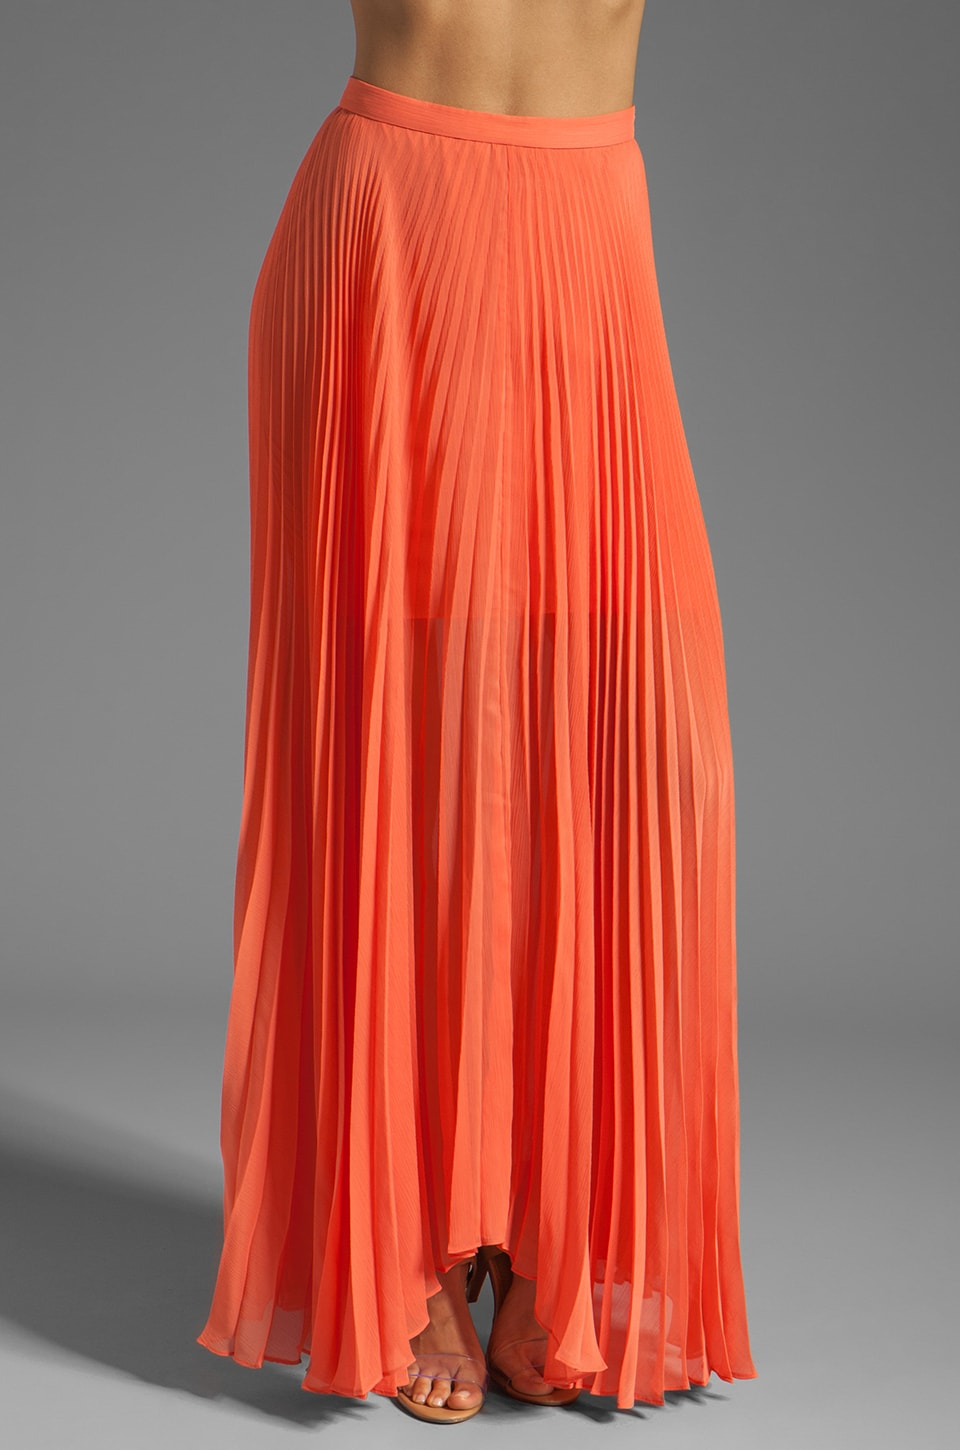 Alice + Olivia Shannon Pleated Maxi Skirt en Papaye